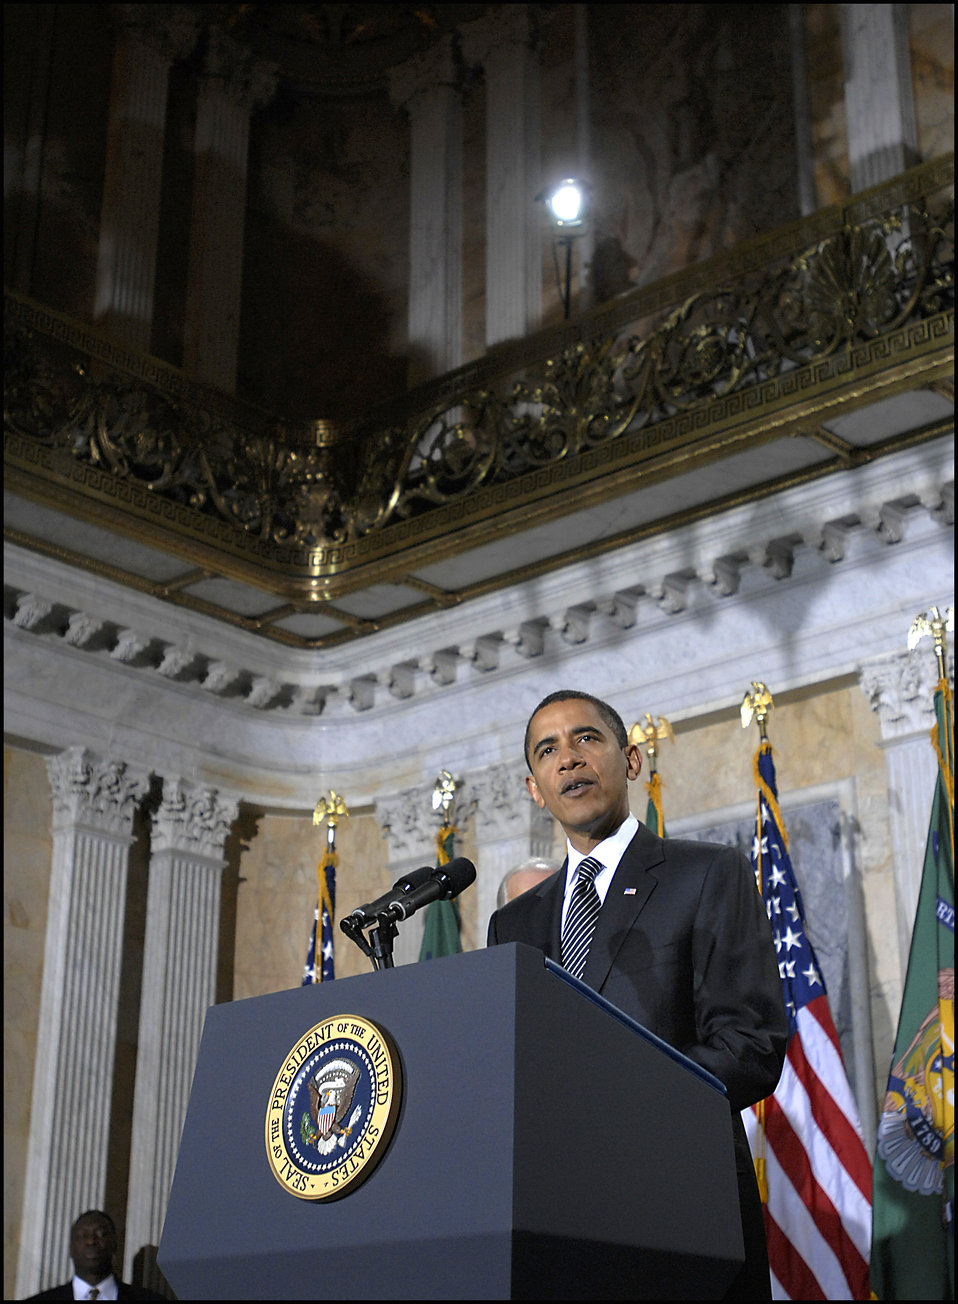 President Obama at Secretary Geithner's swearing-in